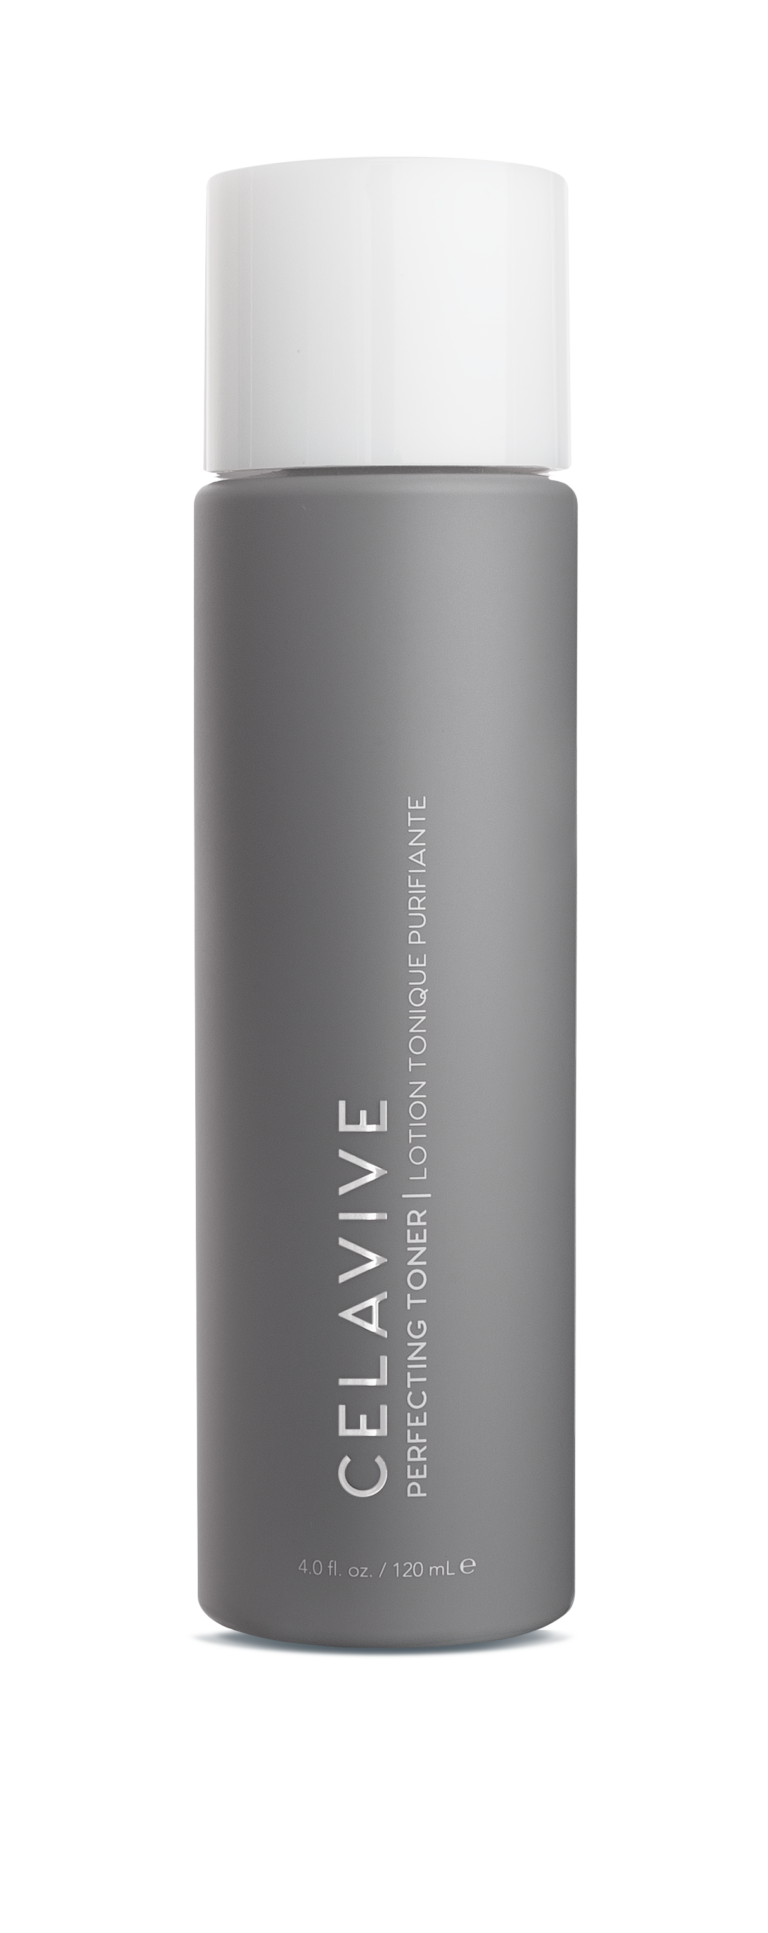 Celavive_ Perfecting Toner Image Only